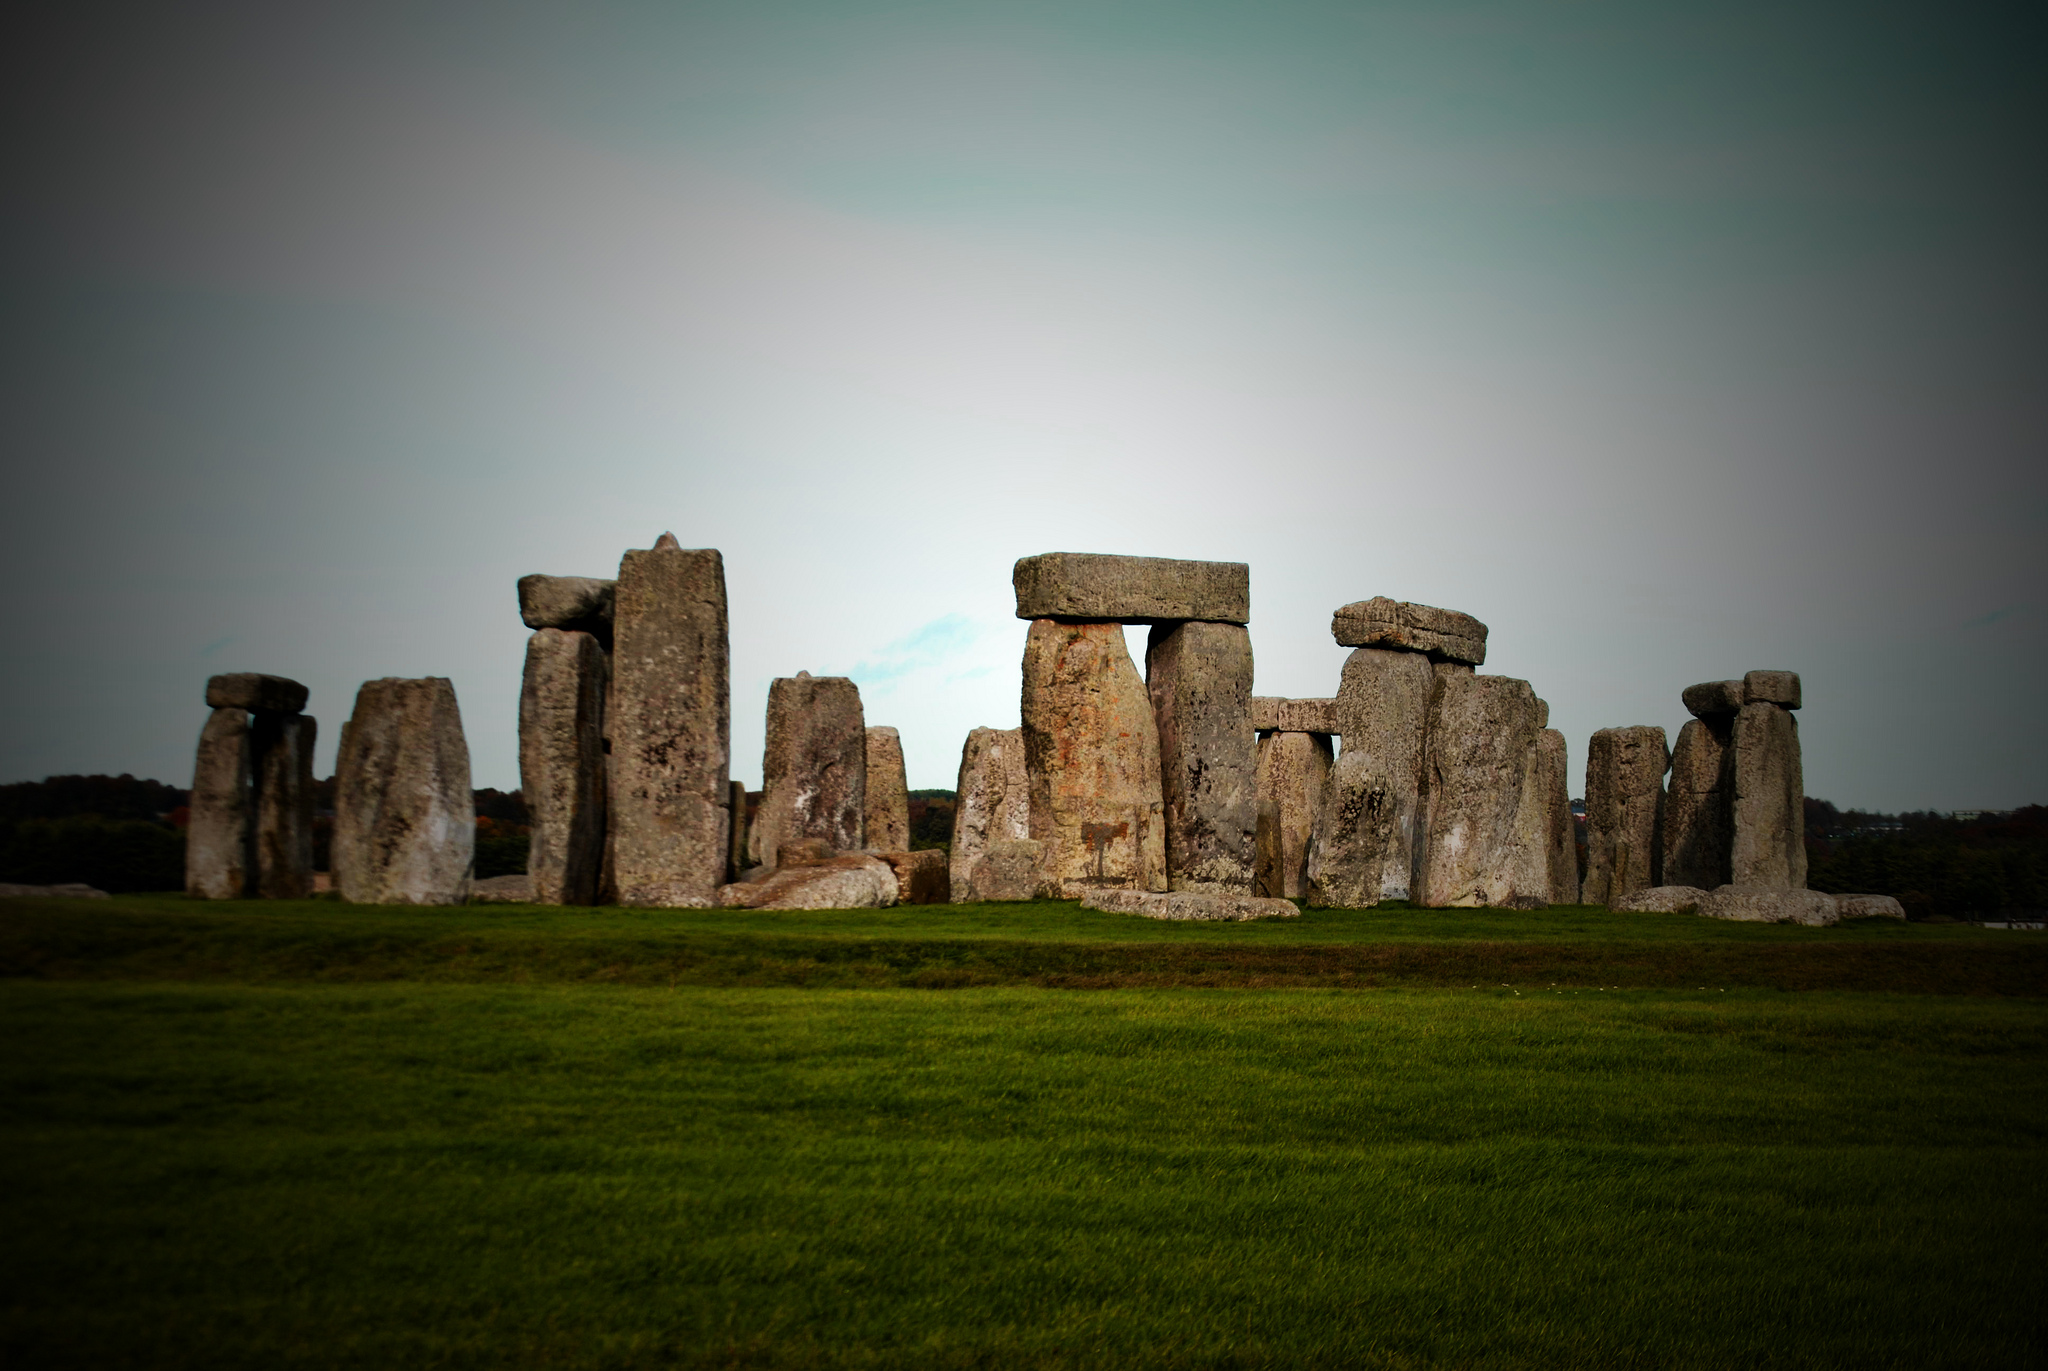 """Stonehenge"" by Oscar F. Hevia via Flickr Creative Commons"